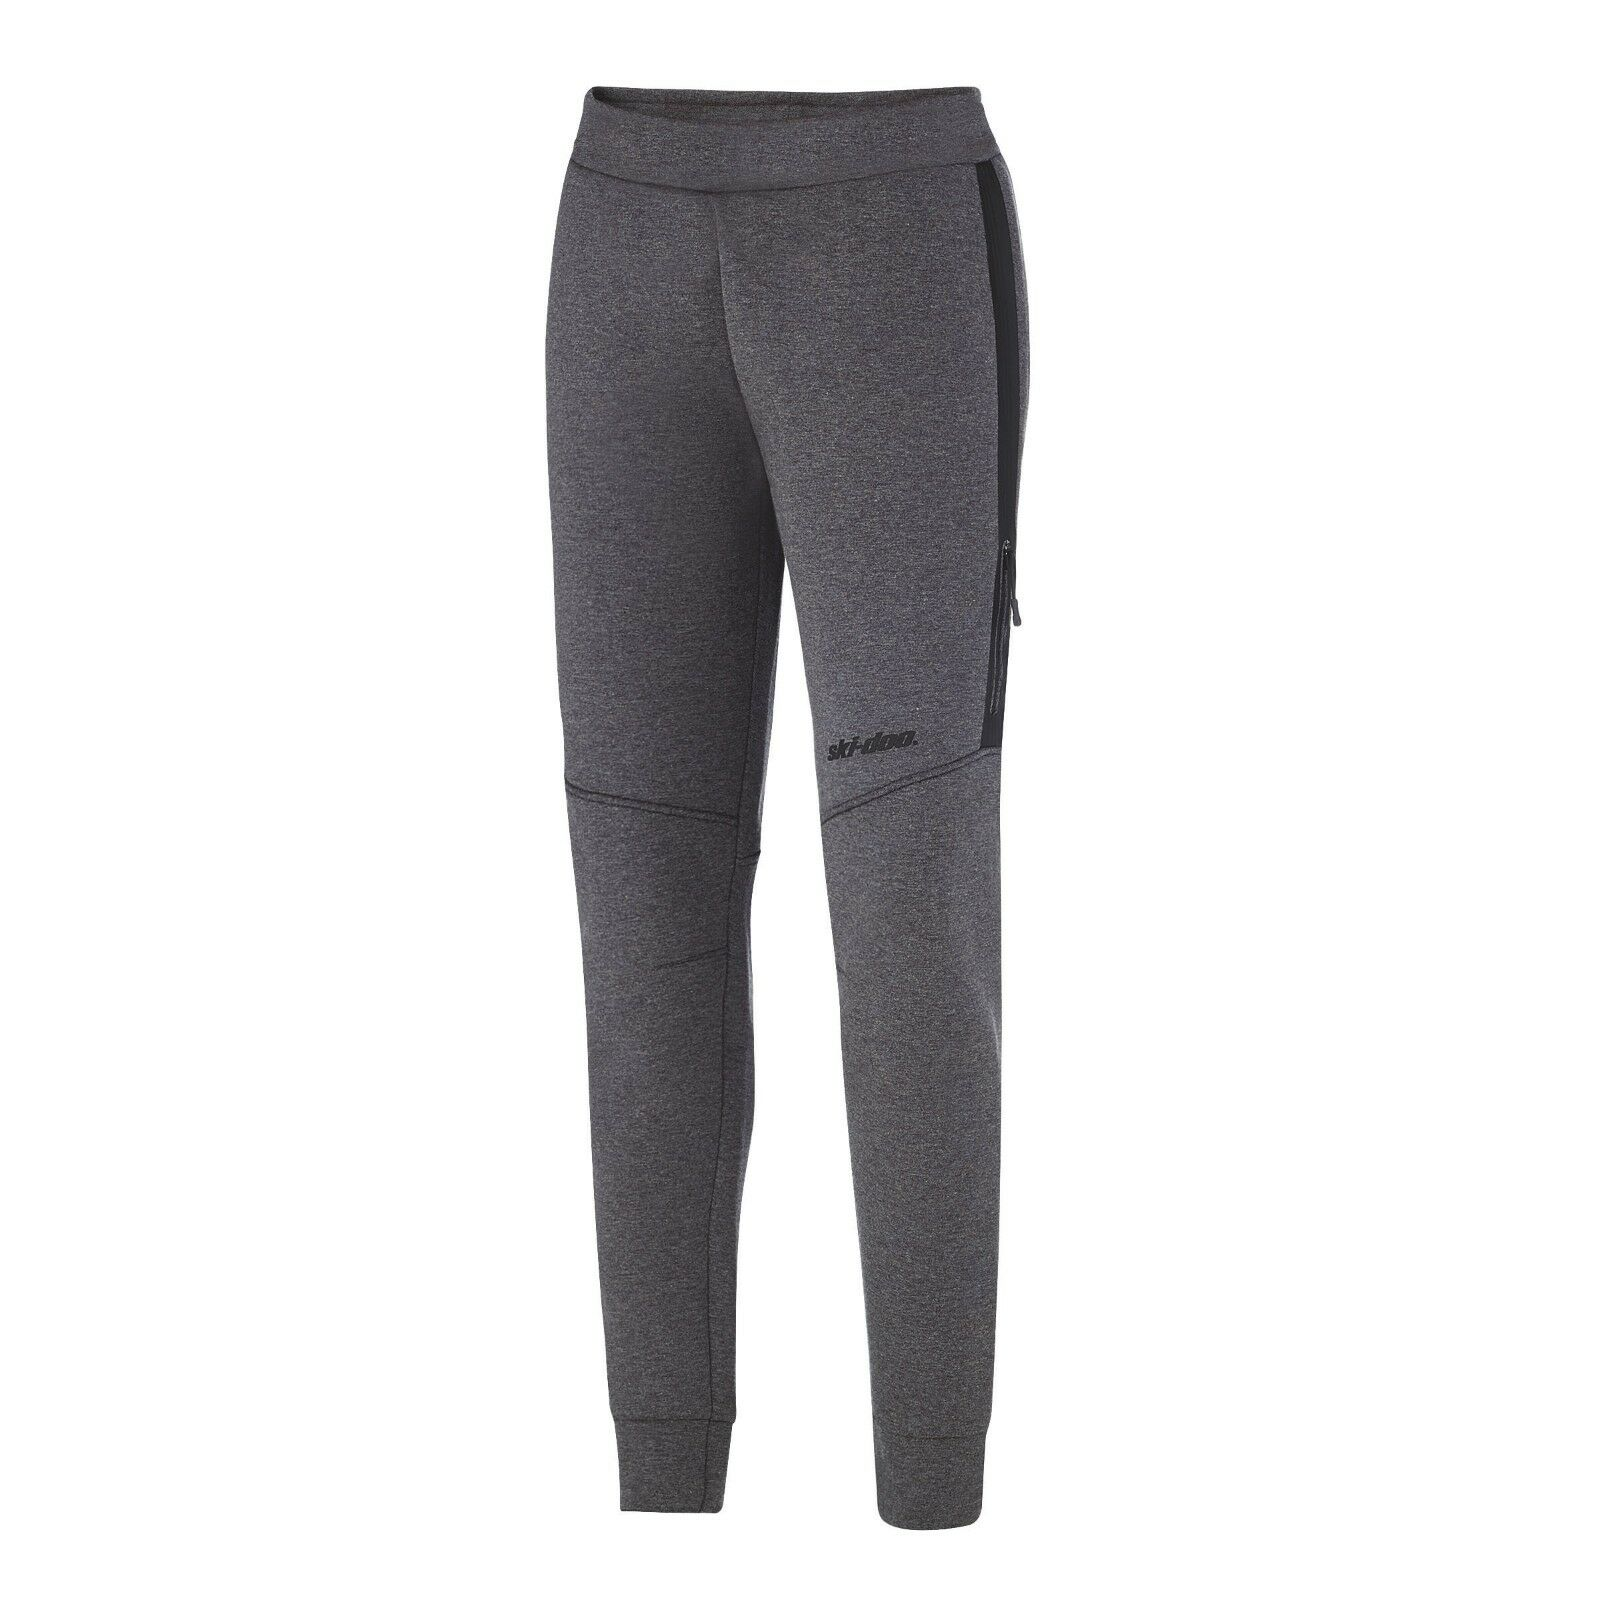 2019 SKI-DOO PRO LINER PANTS 4541321207 LADIES  X-LARGE XL CHARCOAL GREY  special offer